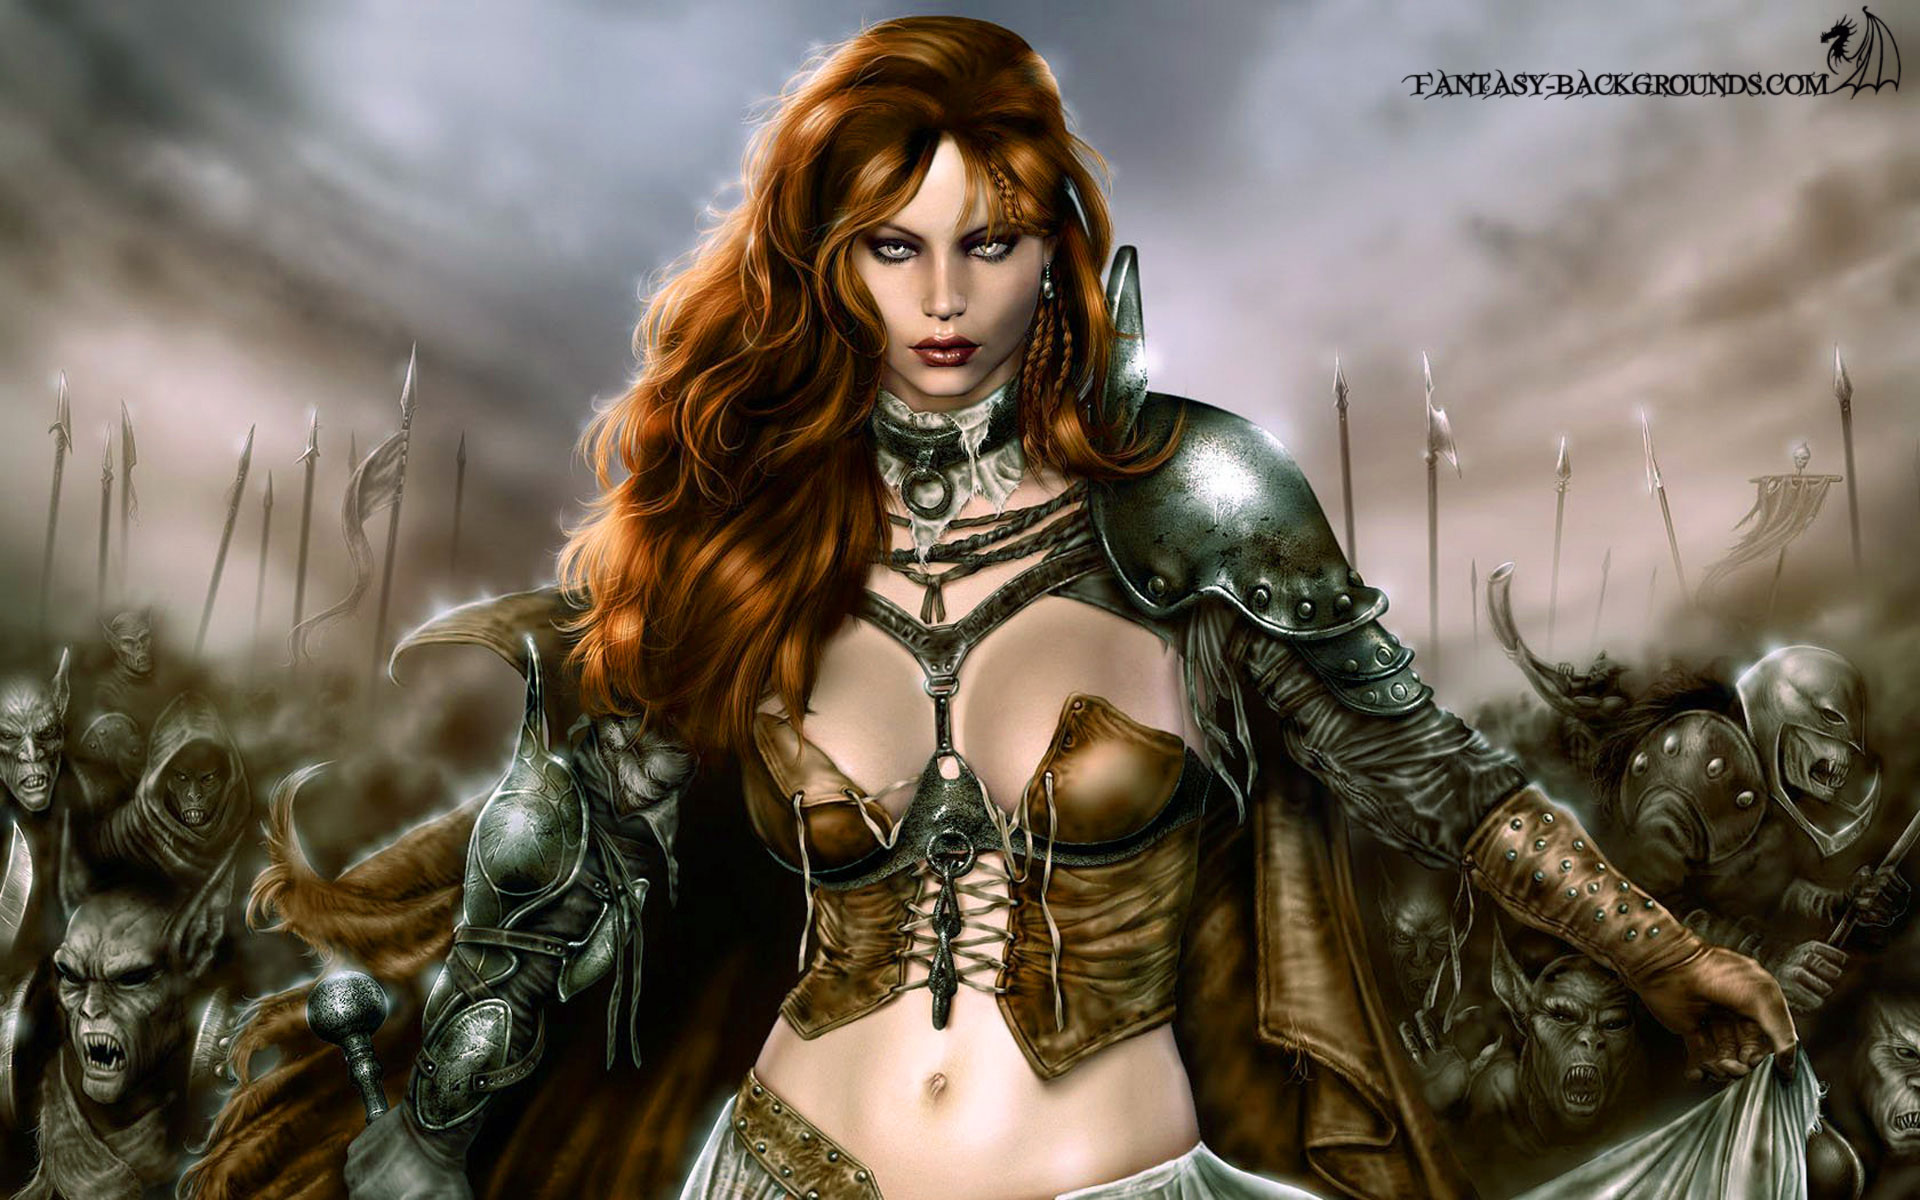 fantasy-woman-background-1920×1200.jpg